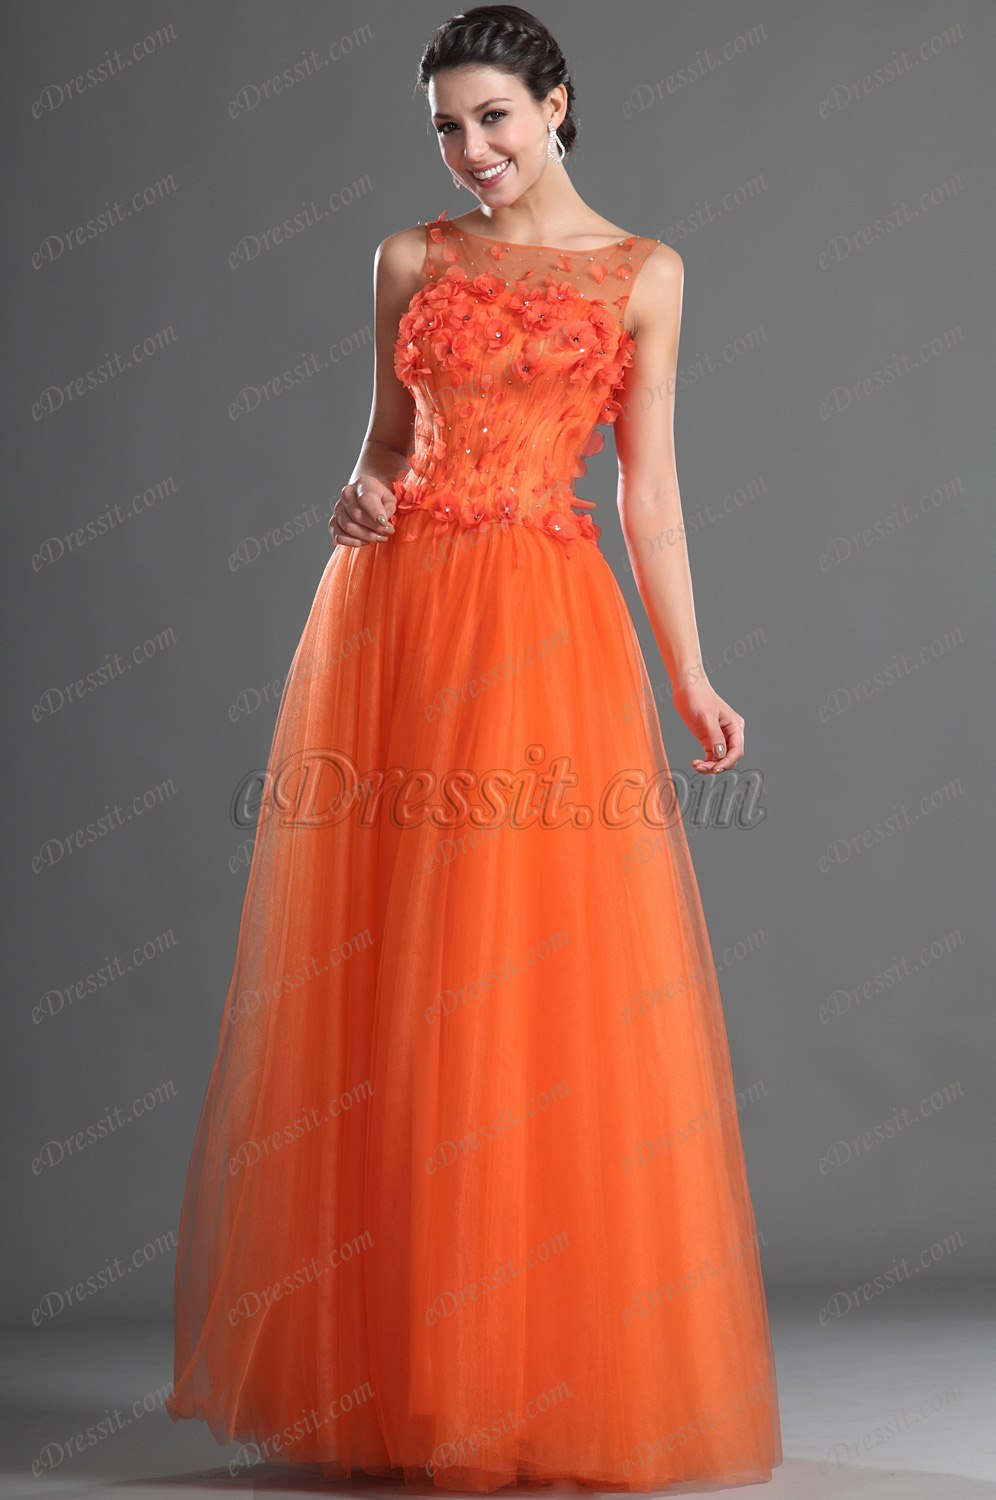 bridal colors edressit flowers sleeves evening dress 02121310 27748